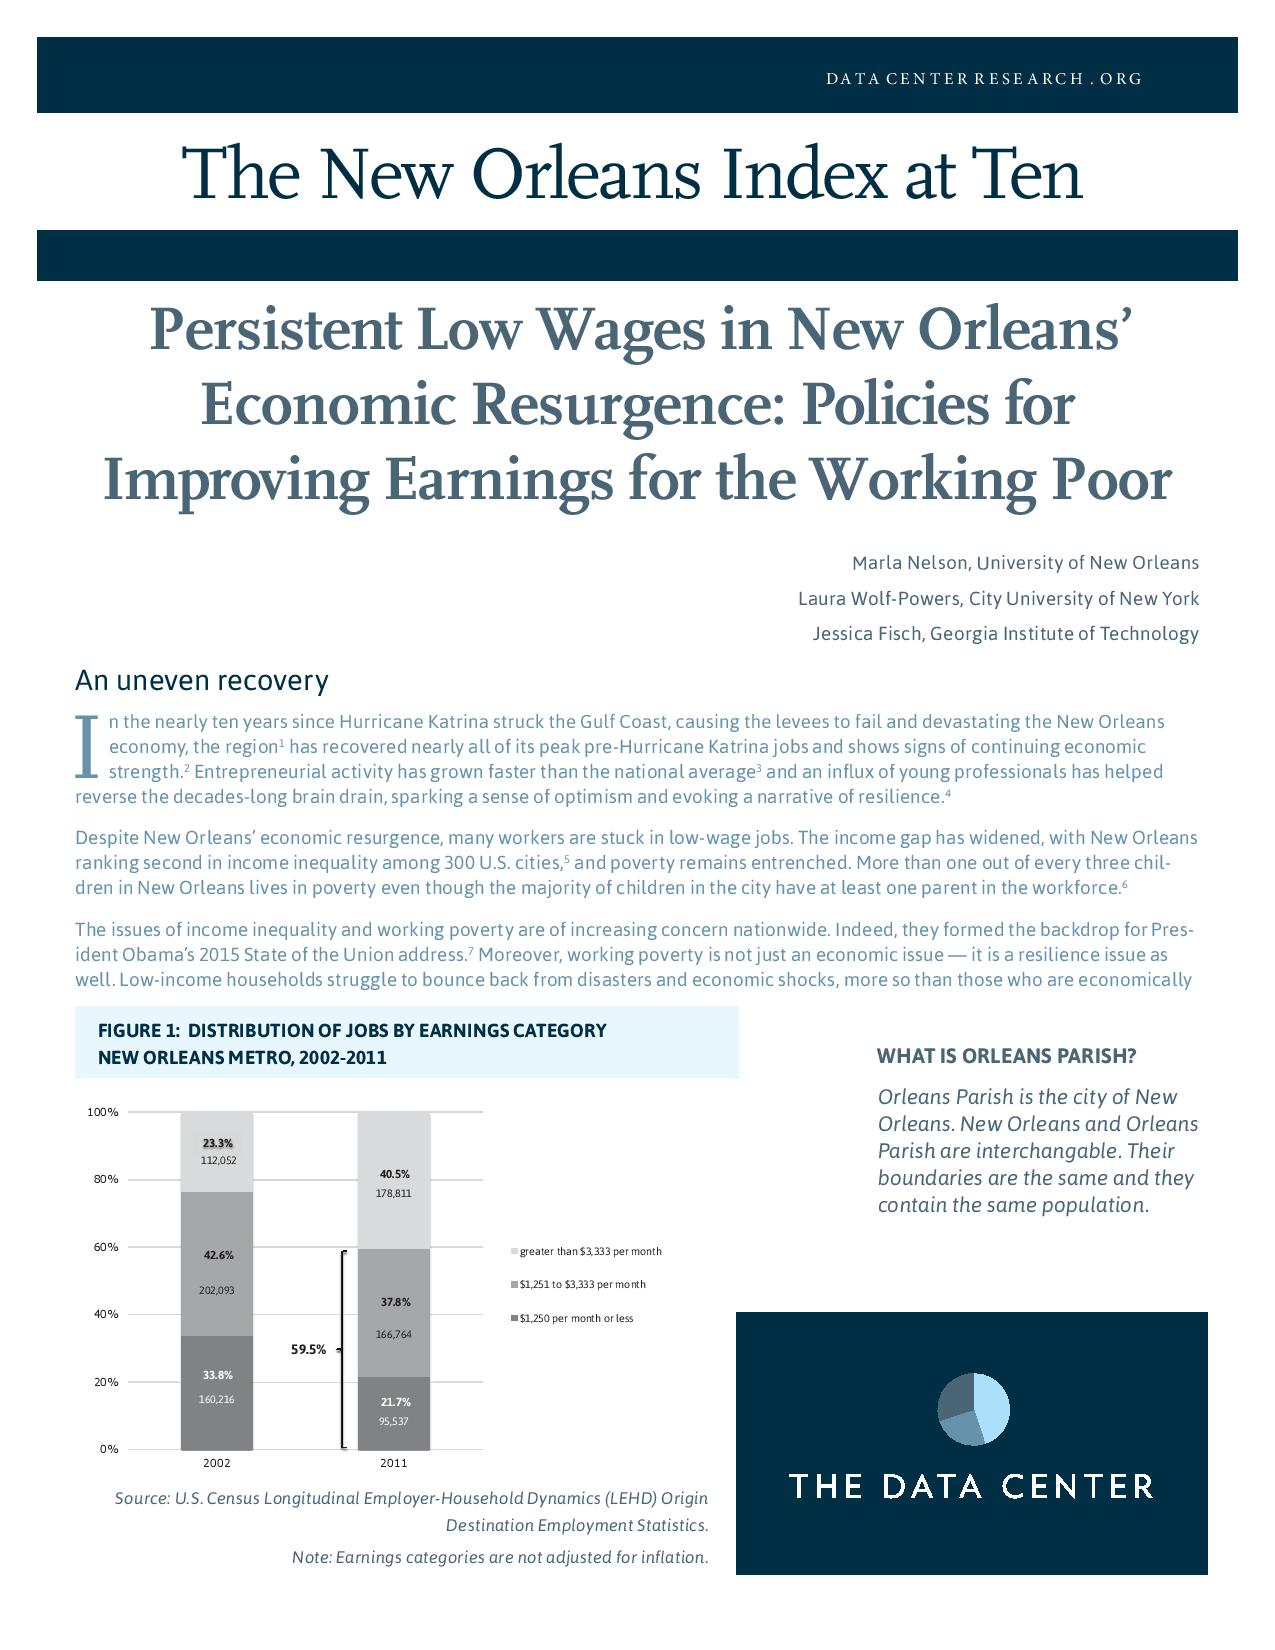 Persistent Low Wages in New Orleans' Economic Resurgence: Policies for Improving Earnings for the Working Poor